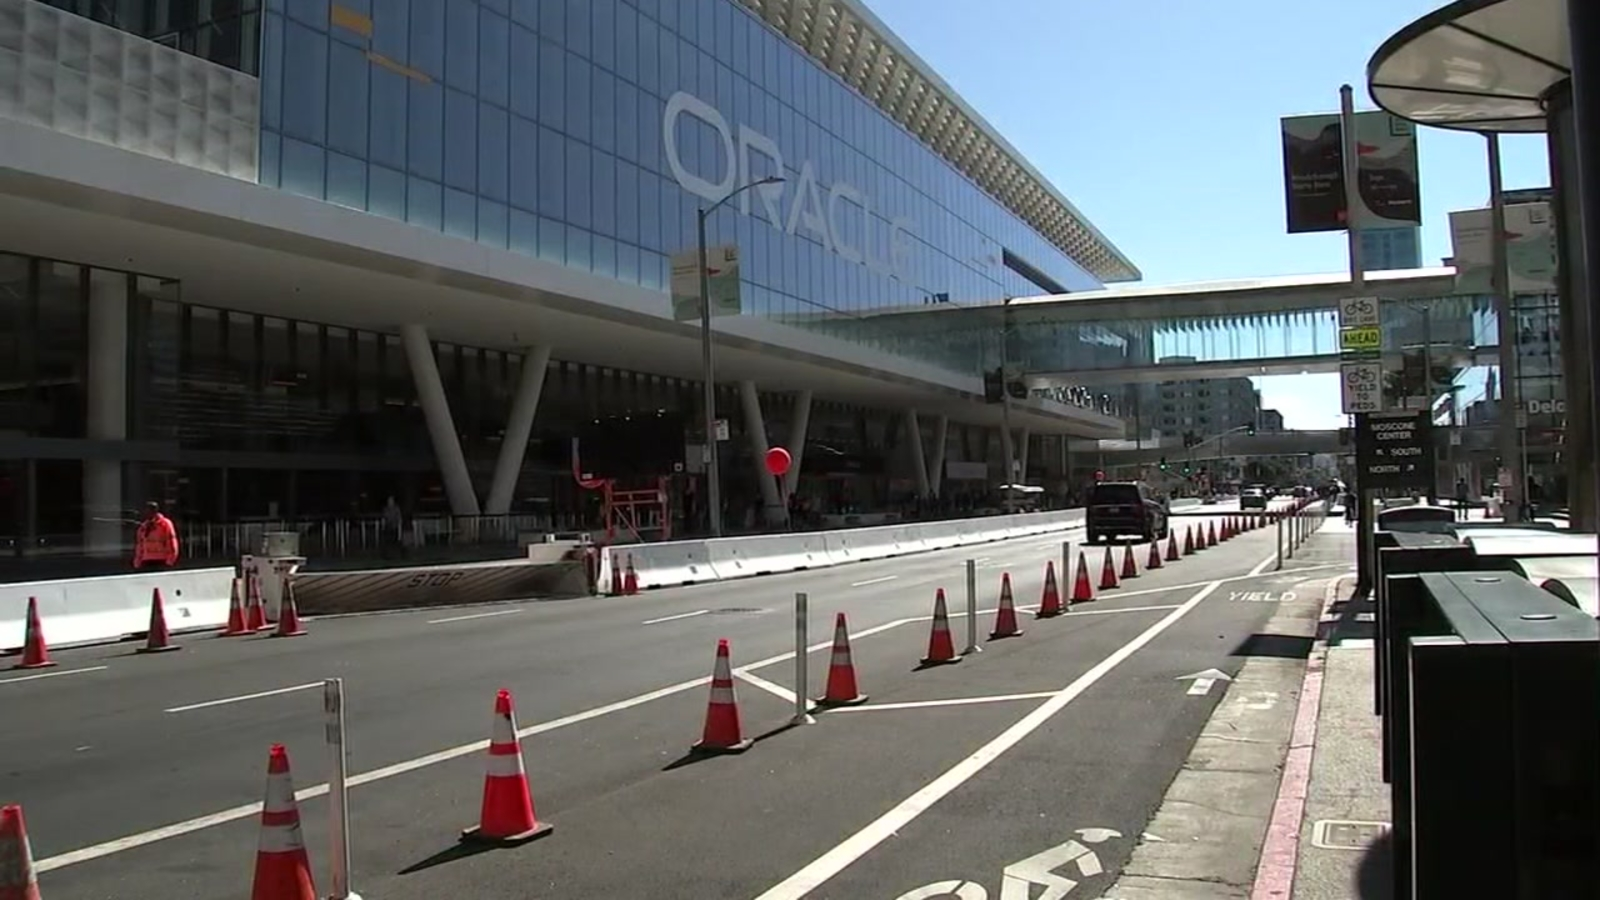 Oracle's 'OpenWorld' conference kicks off in San Francisco